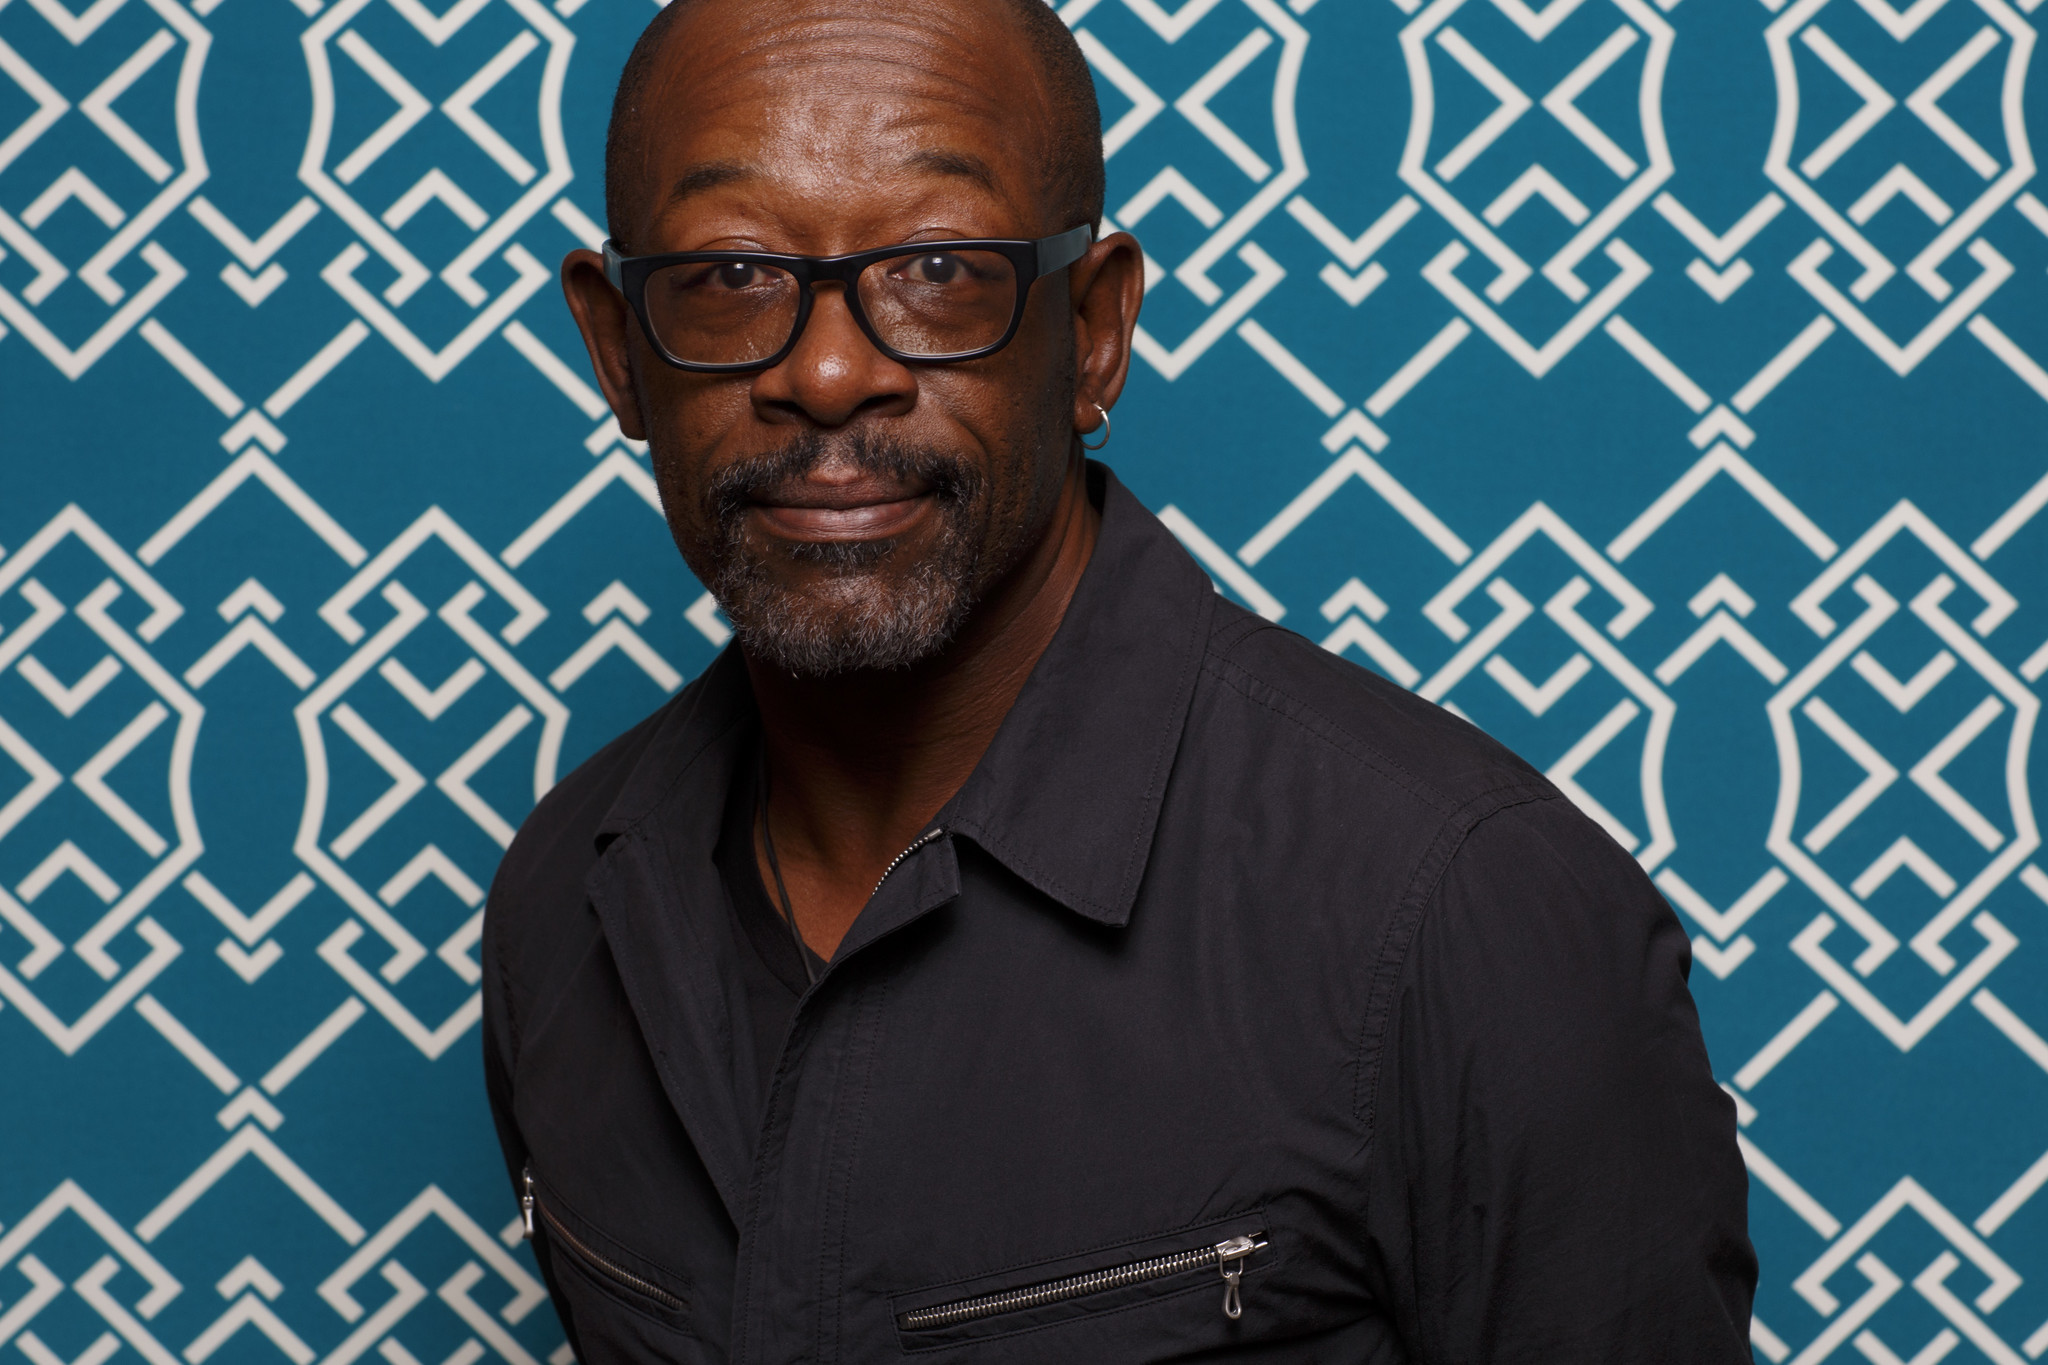 """SAN DIEGO, CALIF. -- JULY 20, 2018-- Lennie James from the television series """"Fear the Walking Dead"""